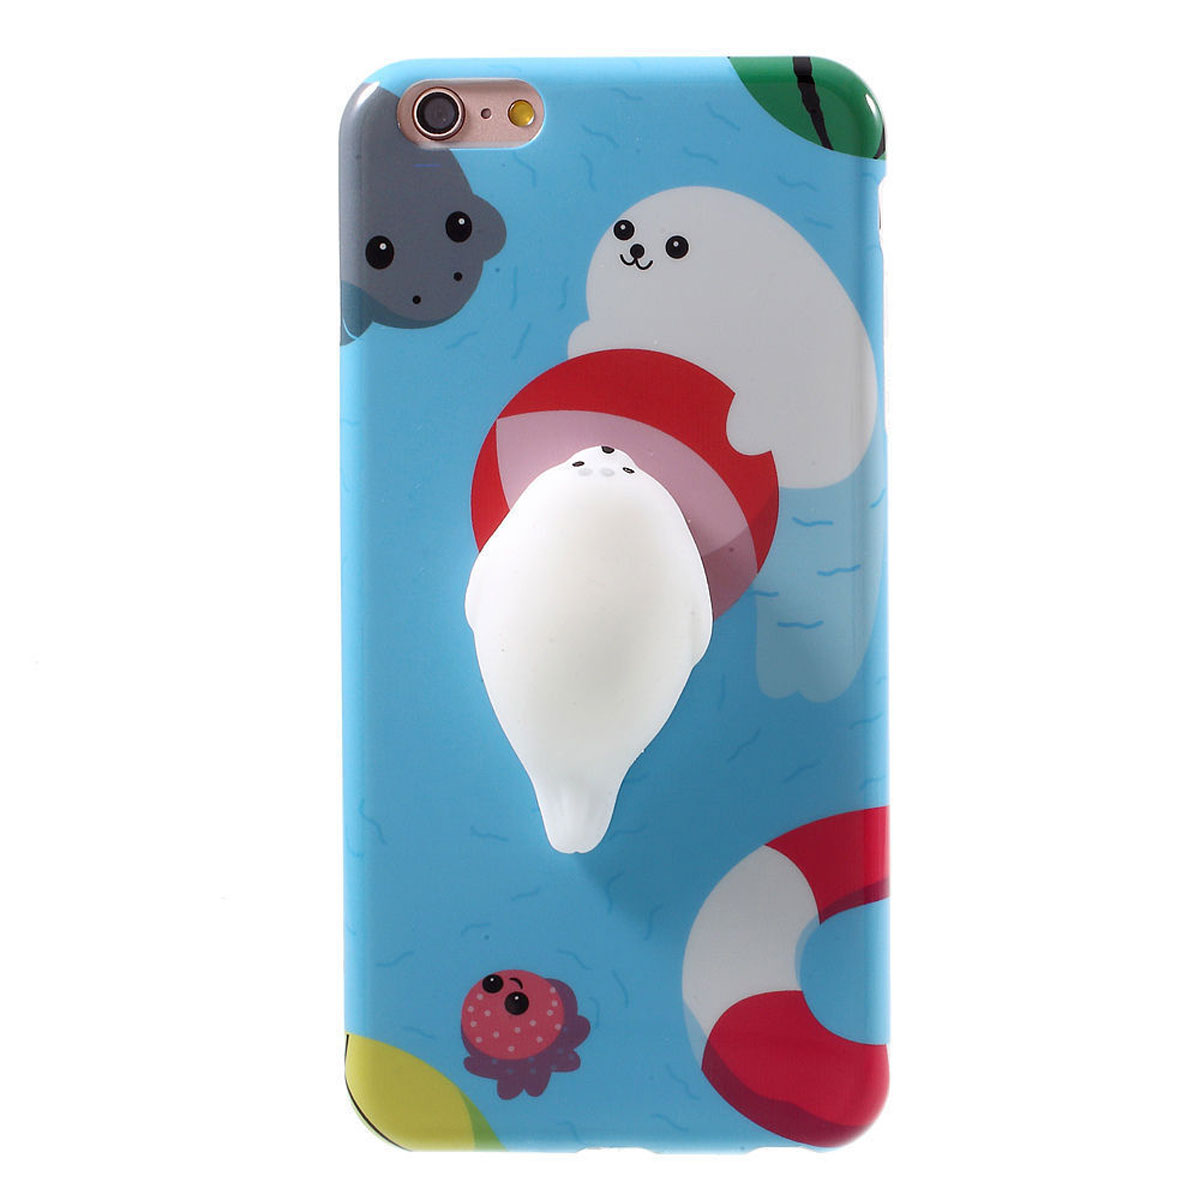 Squishy Cat Iphone X Case : Soft Silicone 3D Squishy Kitty Cat Pattern Cover For Apple iPhone 6 6s 7 Plus+ eBay